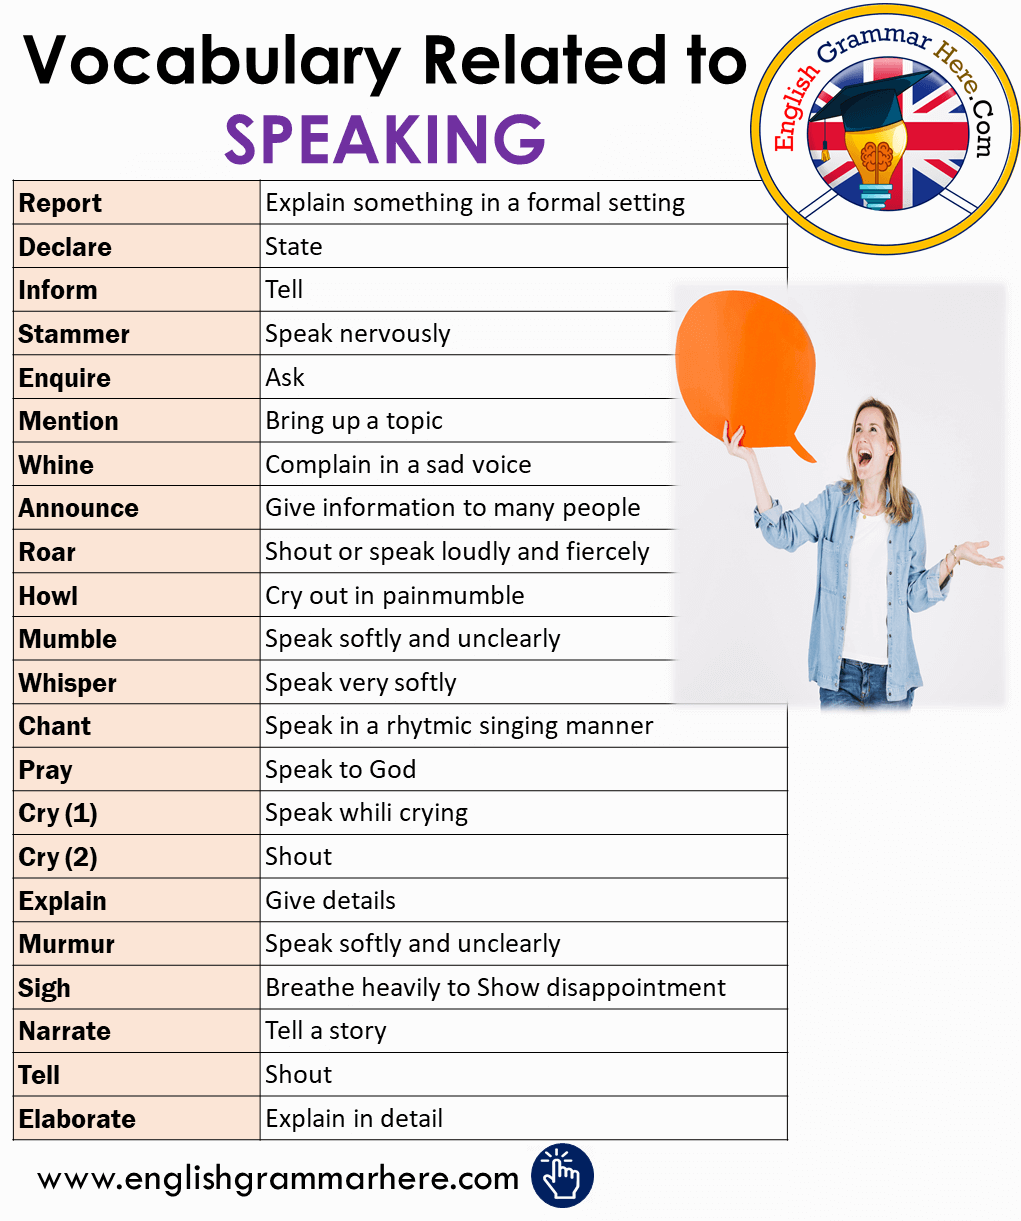 Vocabulary Related to SPEAKING